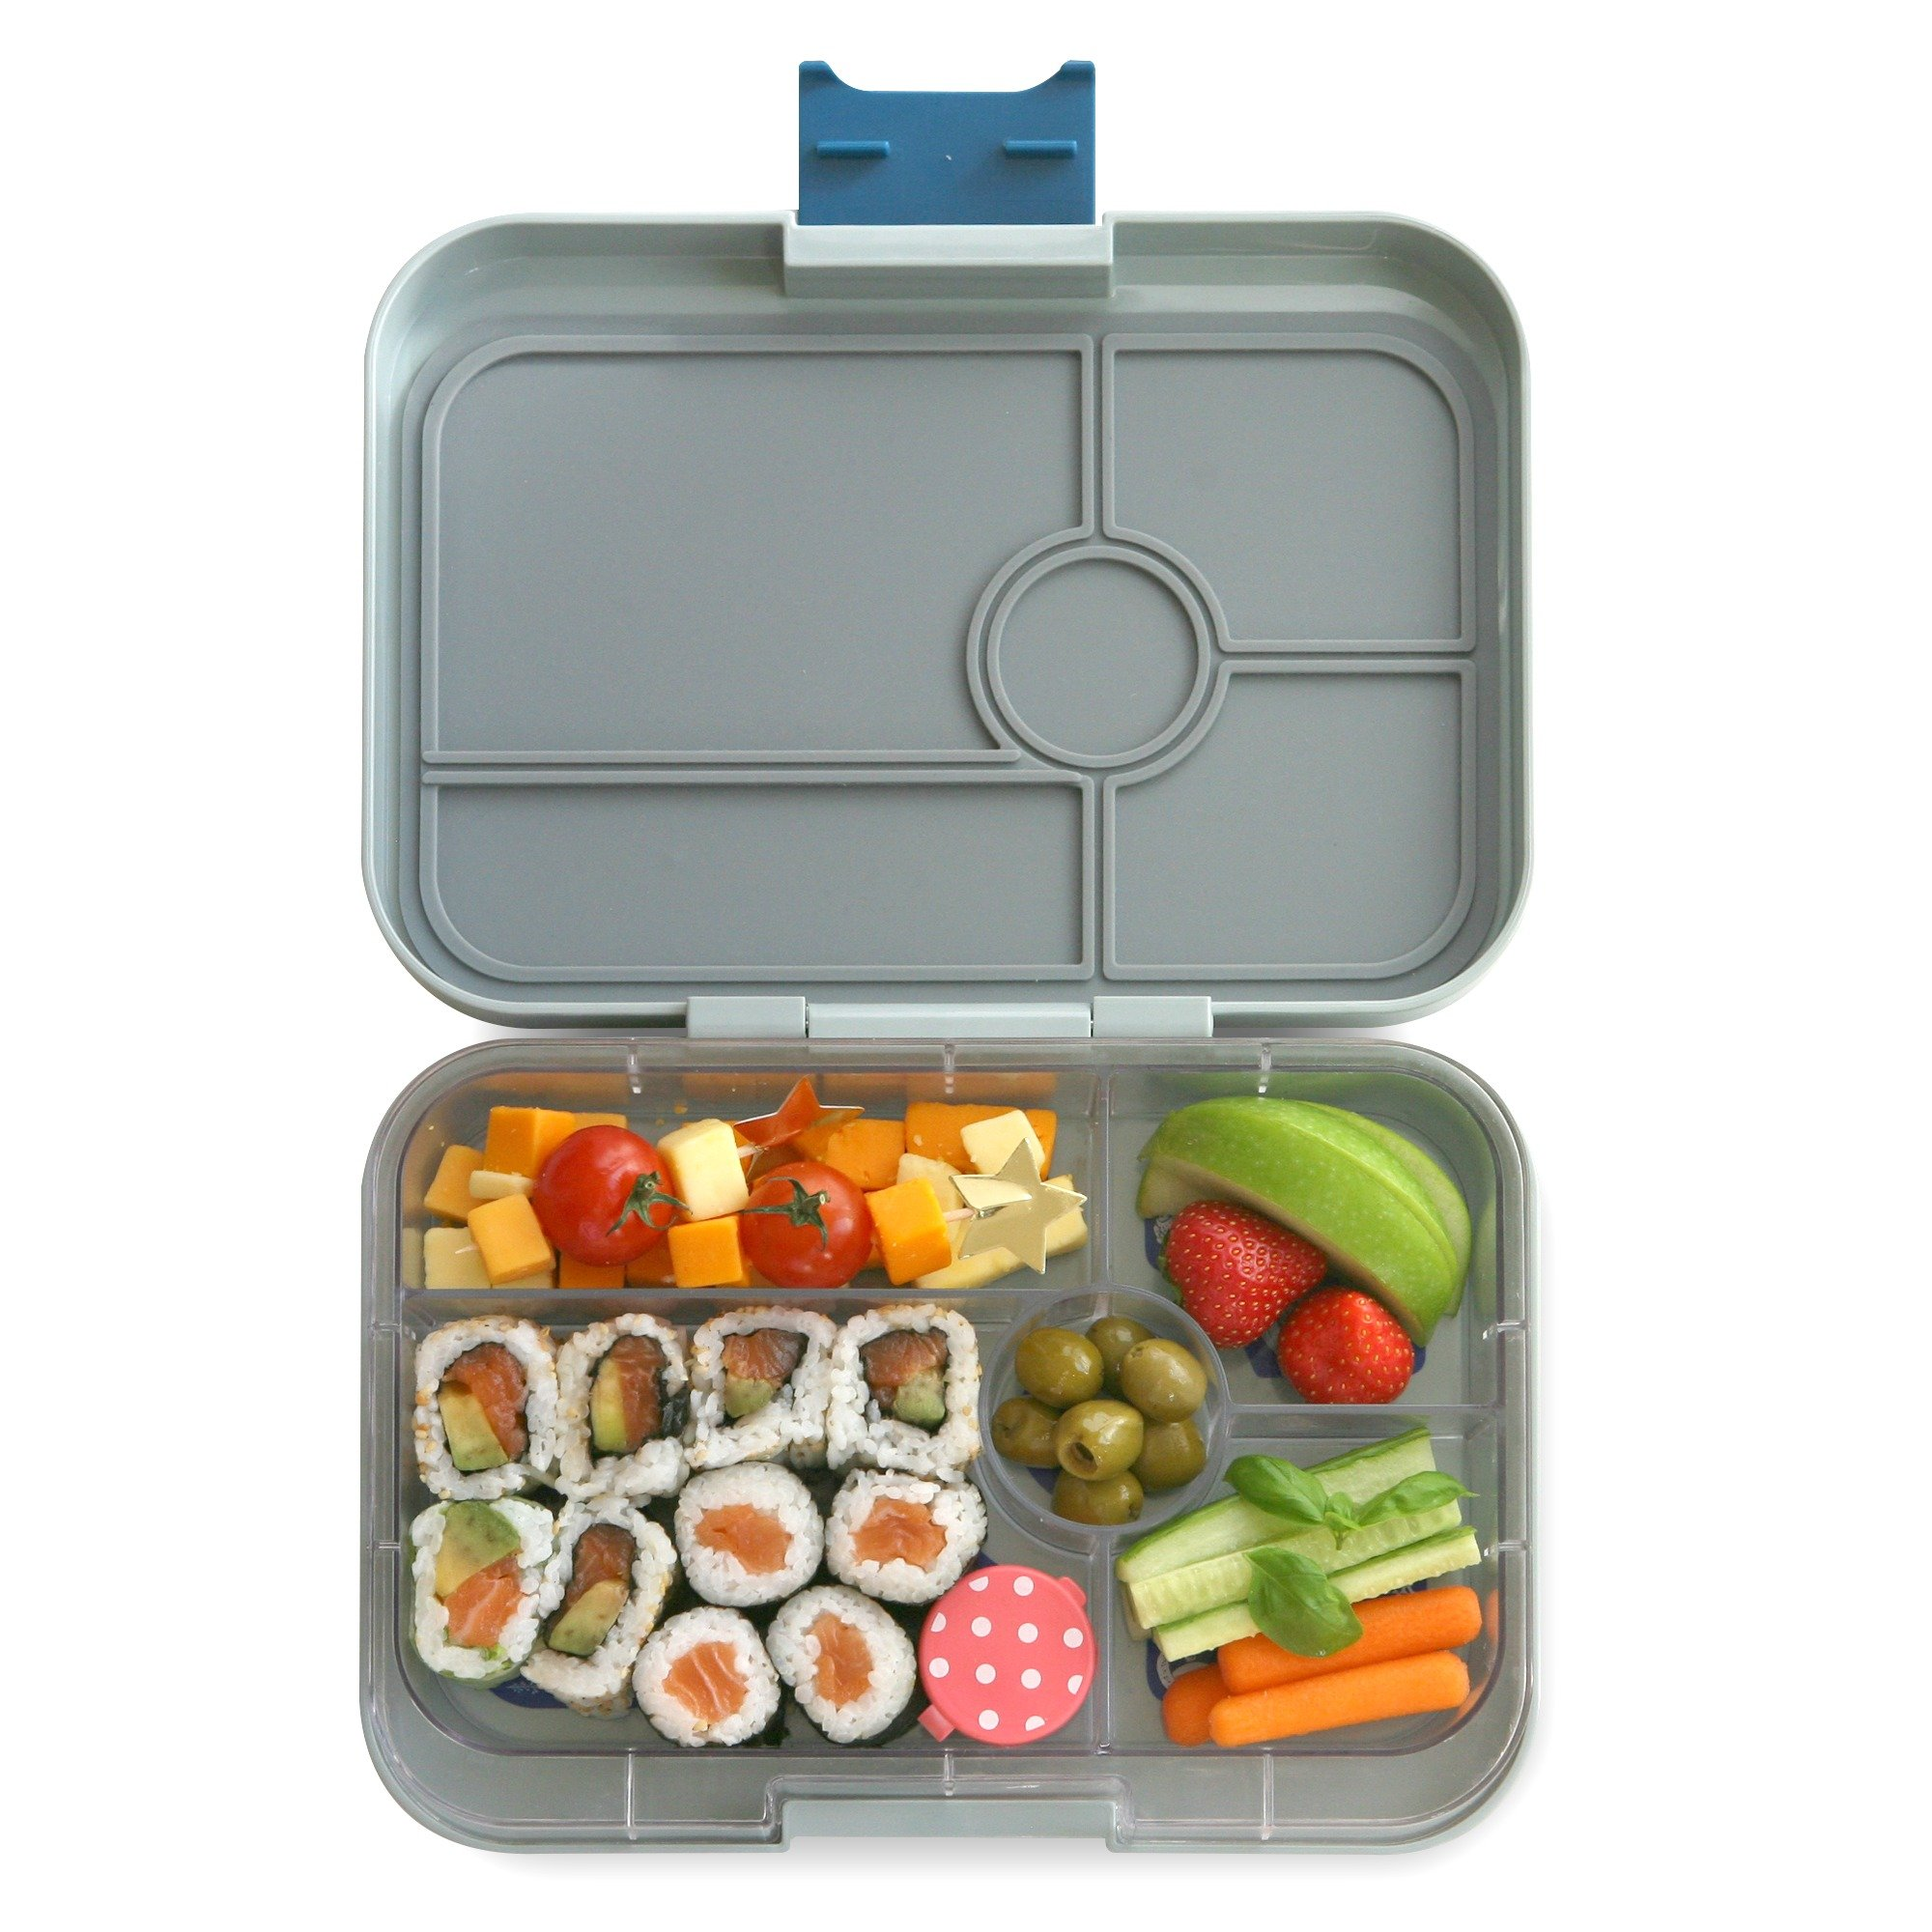 YUMBOX TAPAS Larger Size (Flat Iron Gray) Leakproof Bento lunch box with 5 compartment non-illustrated food tray or Adults, Teens & Pre-teens